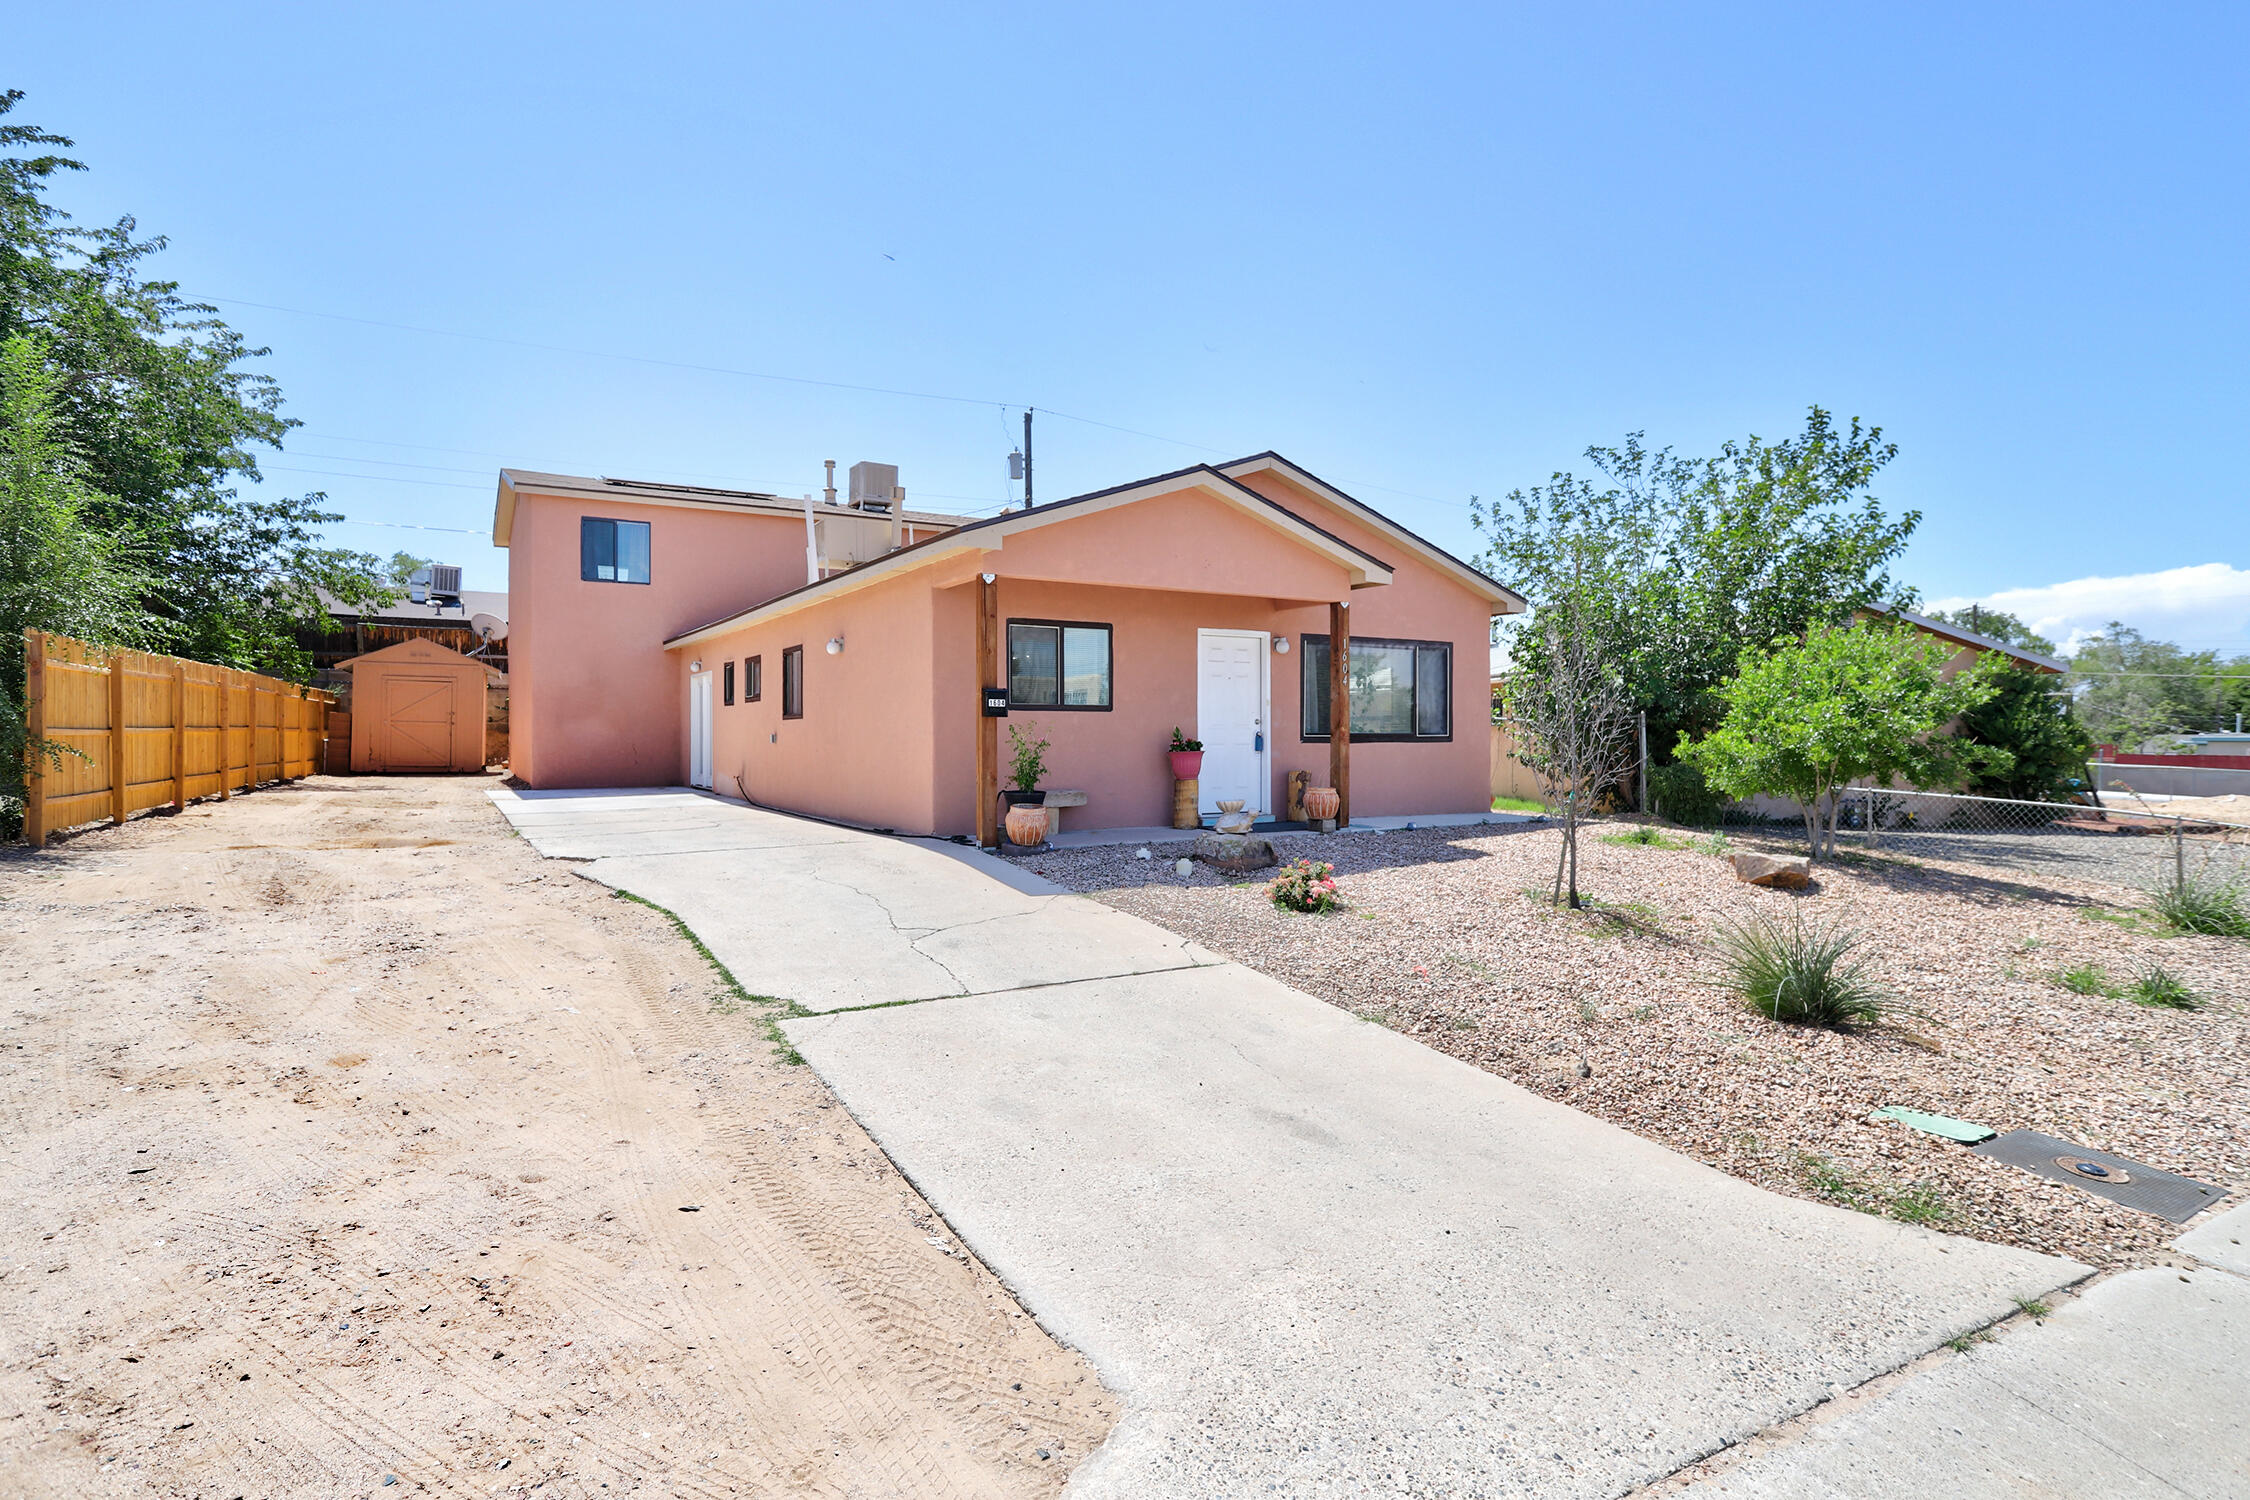 If you are looking for large bedrooms, look no further!!! This home as A LOT of bedroom space in each room.  The open kitchen/living room/dining room combo allows for a great spot to entertain.  The kitchen and bathrooms have granite countertops and the home has been updated throughout with newer cabinets, newer flooring, newer stucco and newer landscaping.